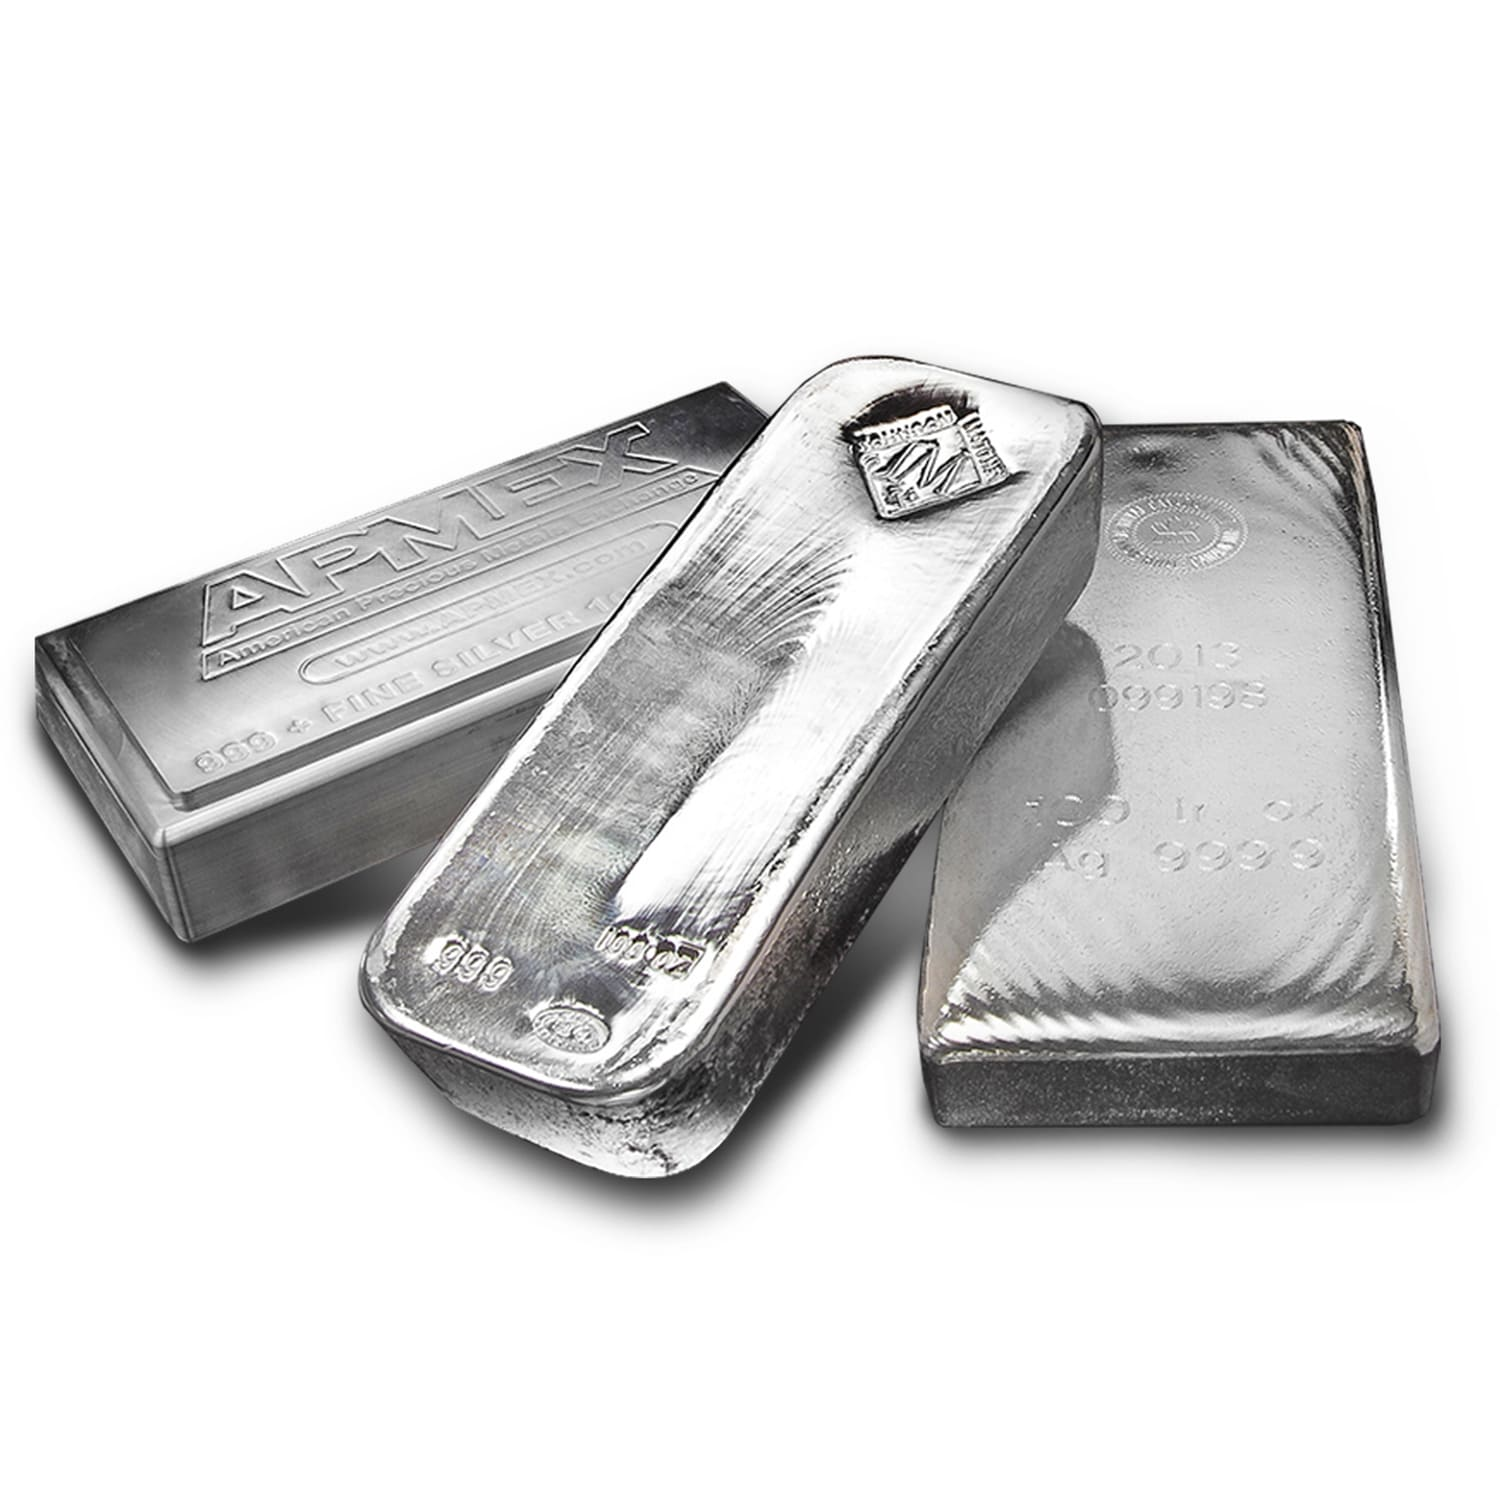 102.40 oz Silver Bars - Secondary Market